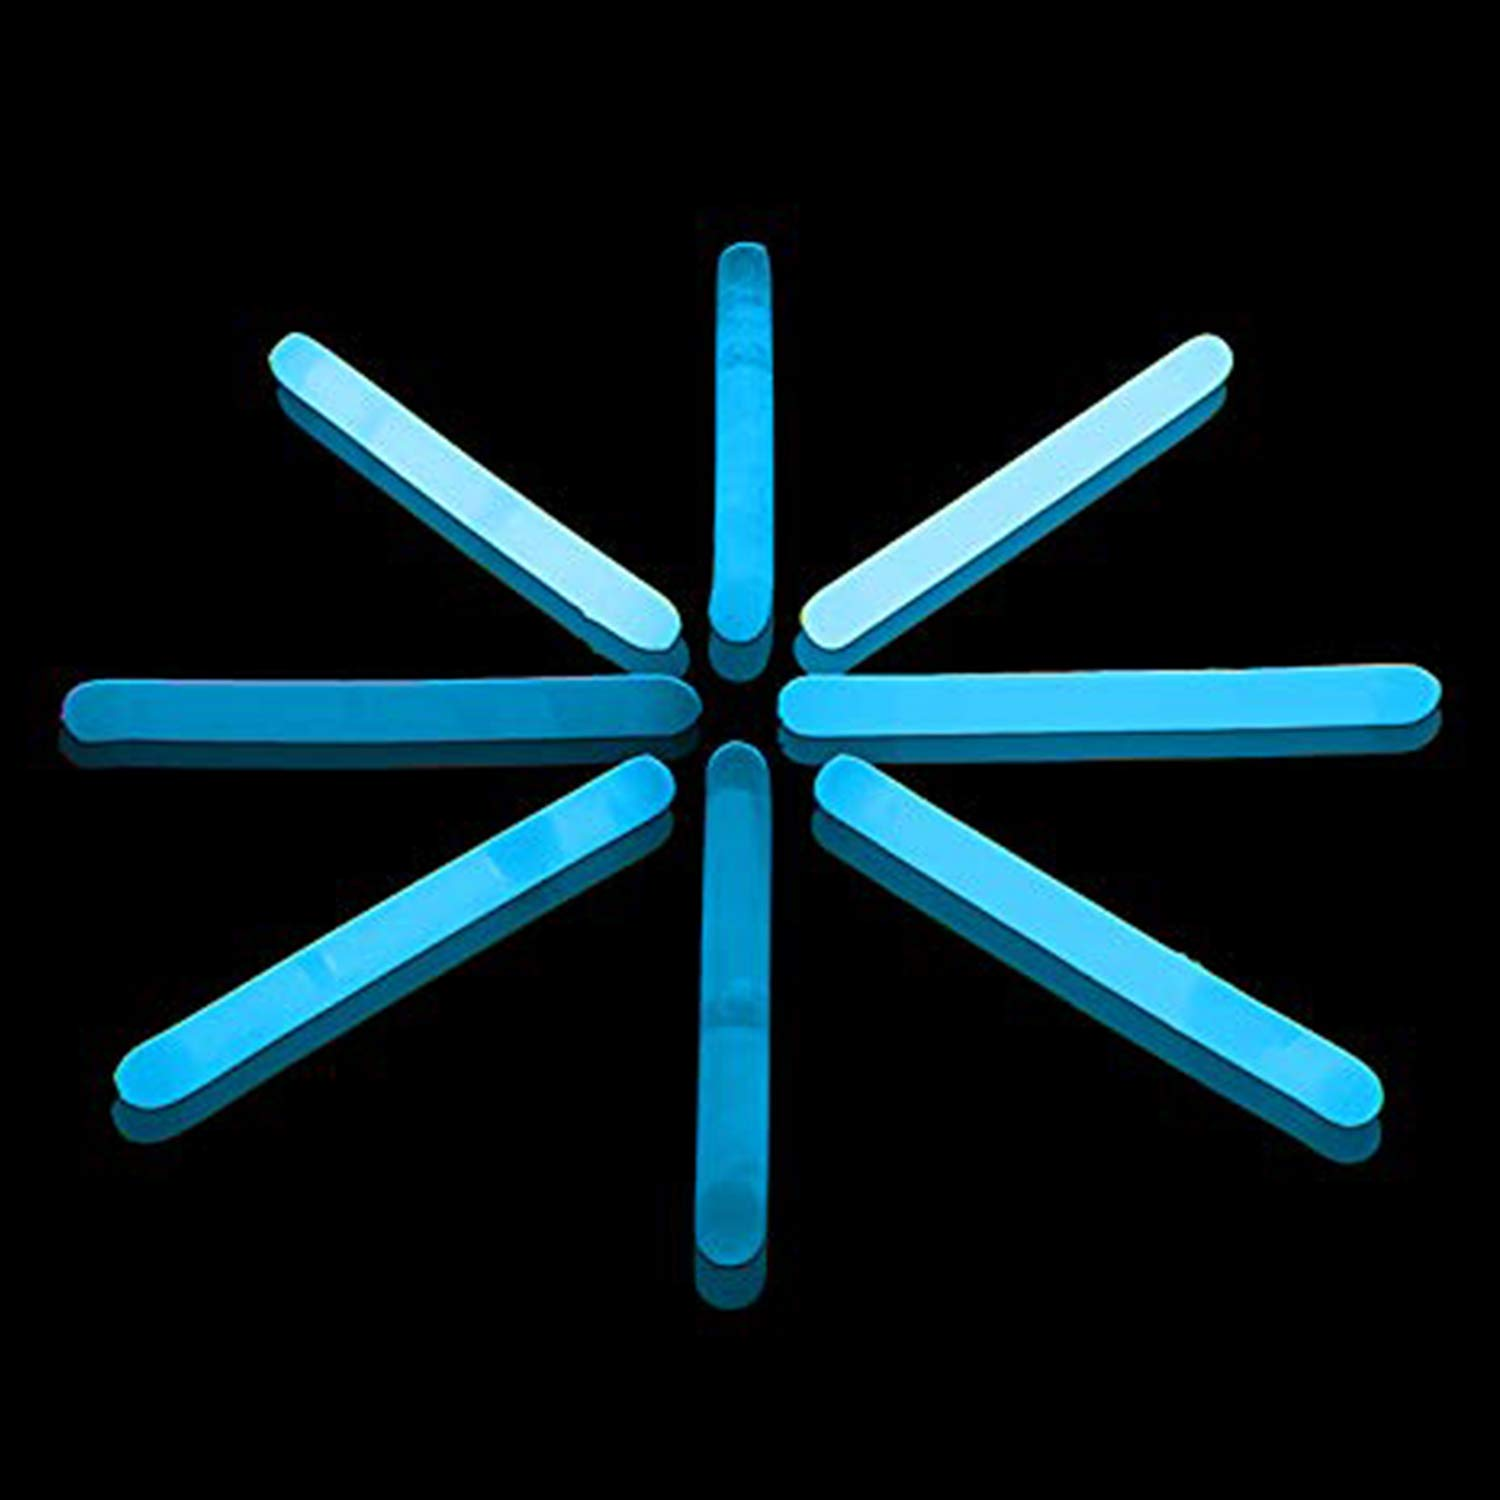 Lumistick 1.5 Inch Fishing Glow Sticks | Bright Color Snap Lights Glowsticks | Neon Mini Light for Swimming | Glow in The Dark Camping Night Party Favor Supplies (Blue, 1000 Glow Sticks)